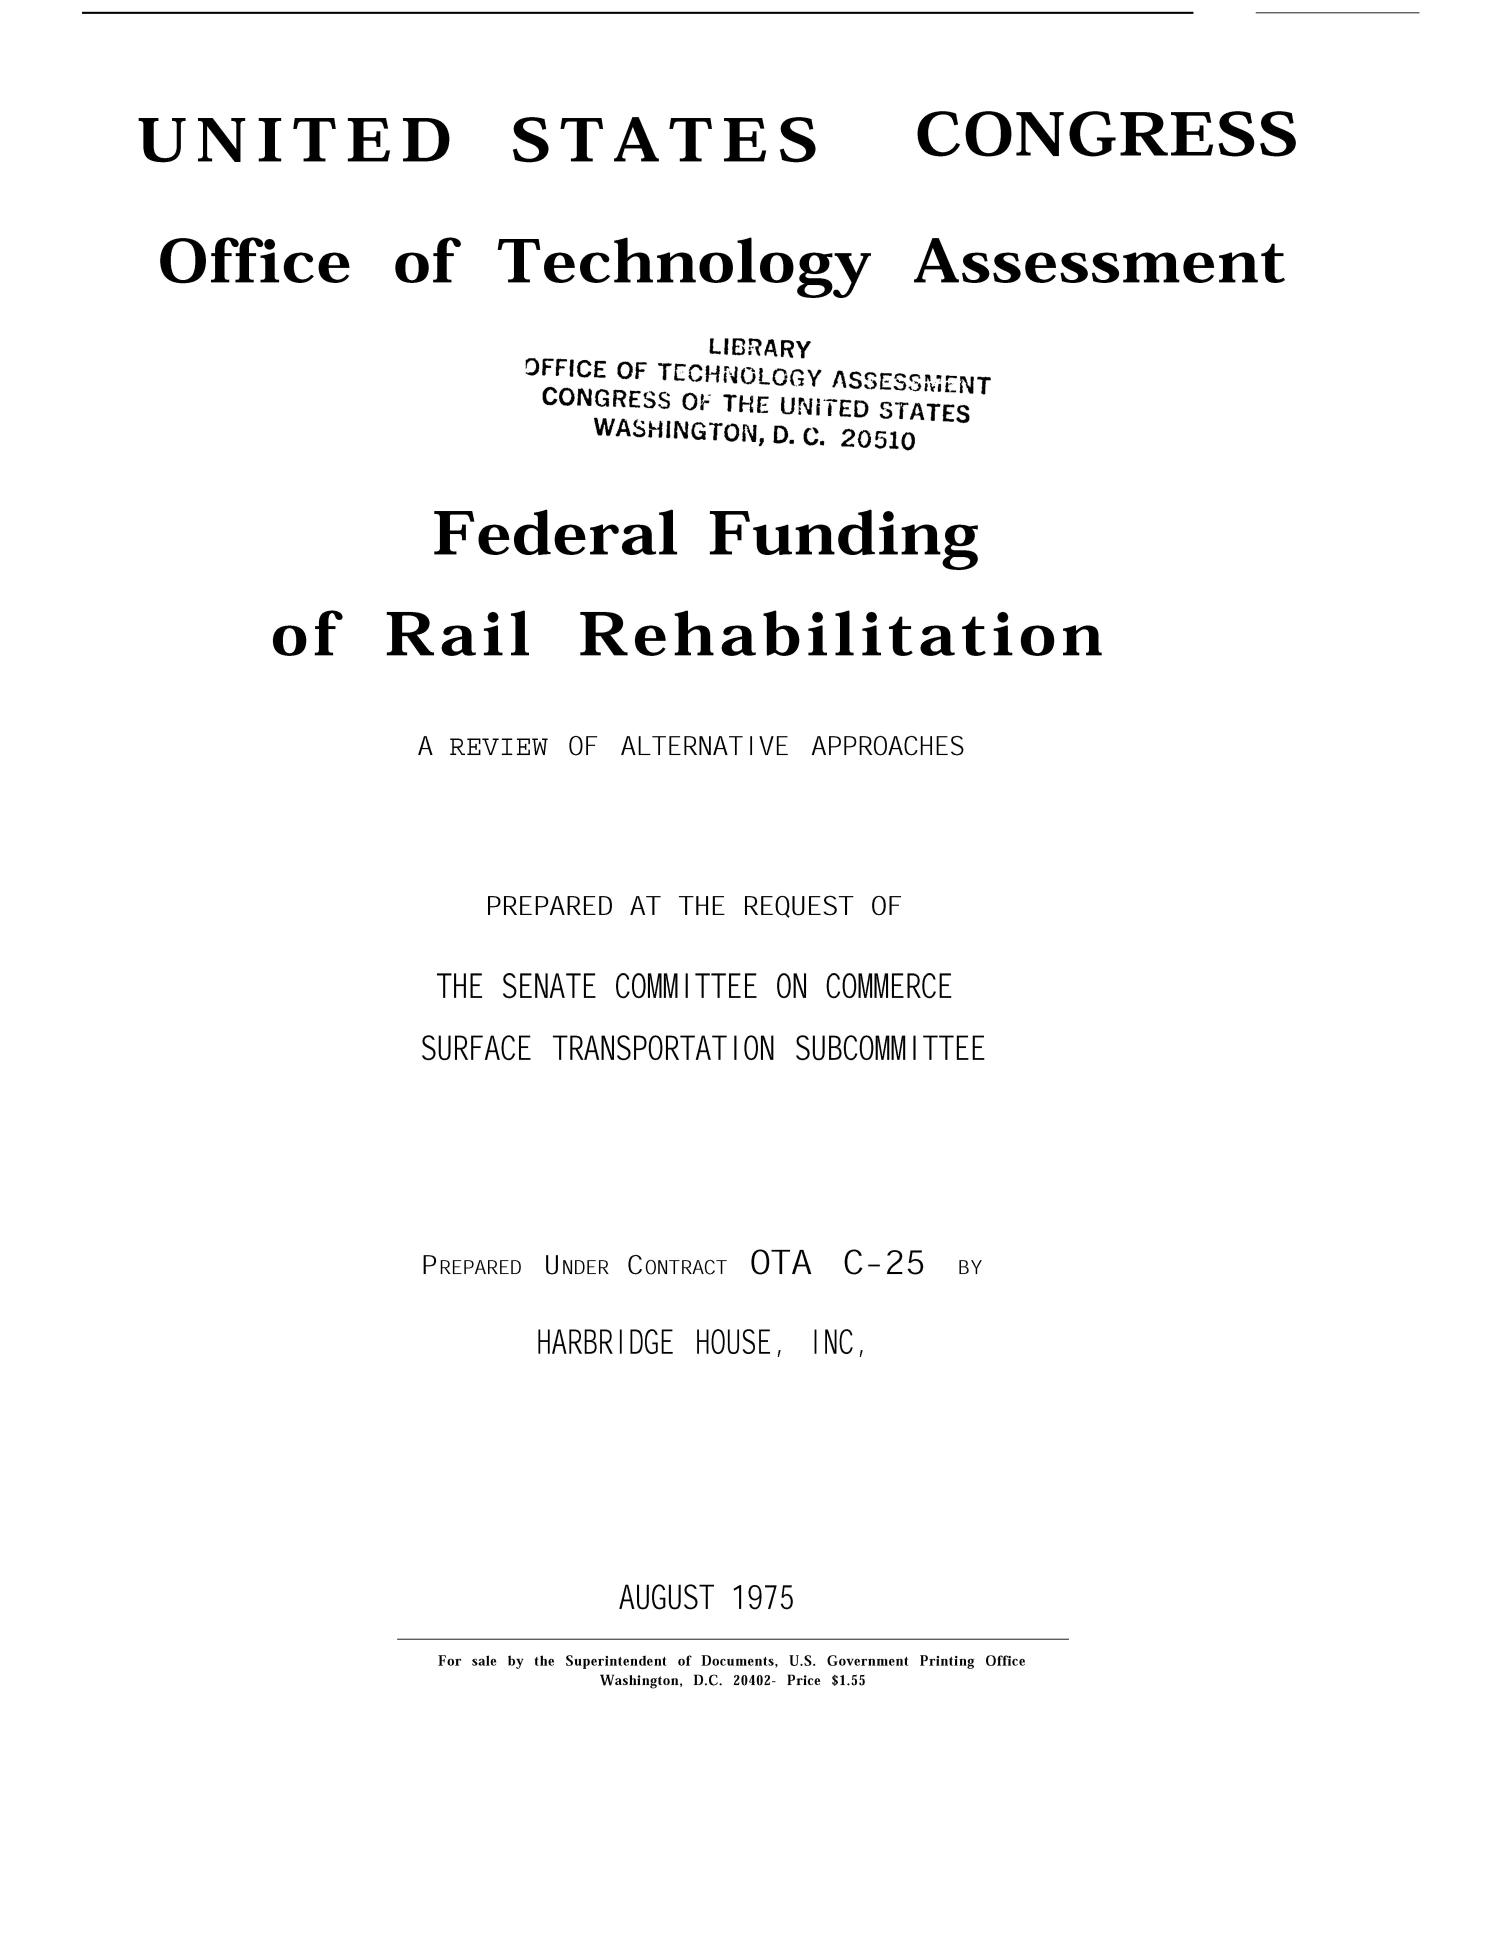 A Review of Alternative Approaches to Federal Funding of Rail Rehabilitation                                                                                                      Title Page